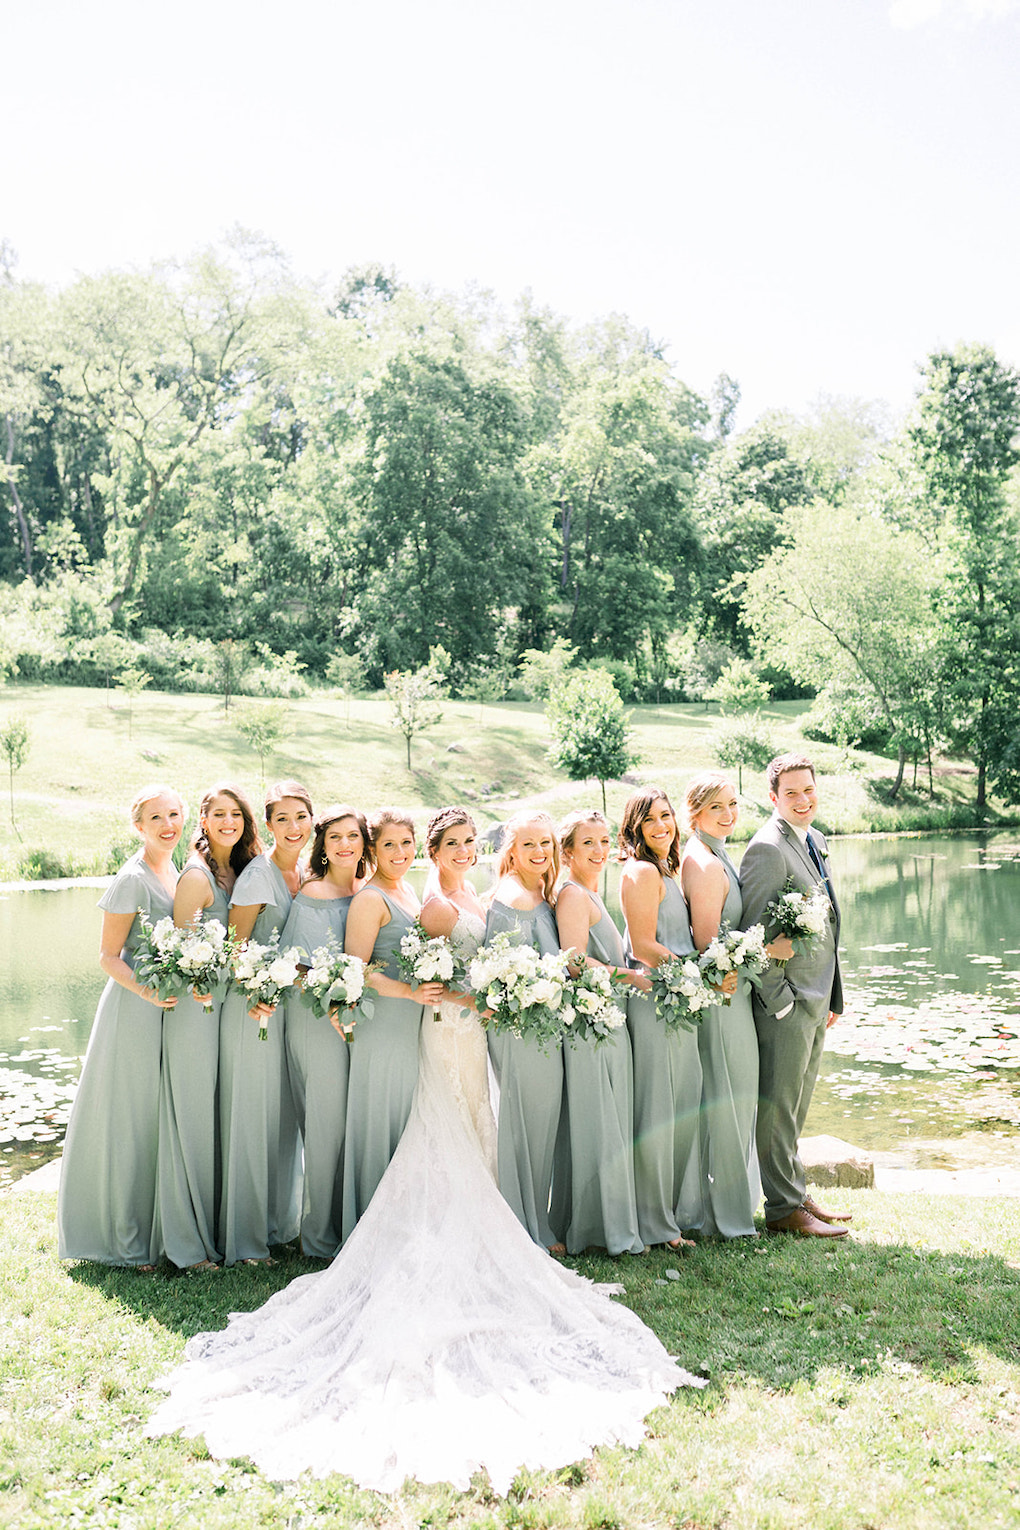 Mist Green Bridal Party: Pittsburgh Botanic Garden wedding planned by Exhale Events. See more wedding inspiration at exhale-events.com!